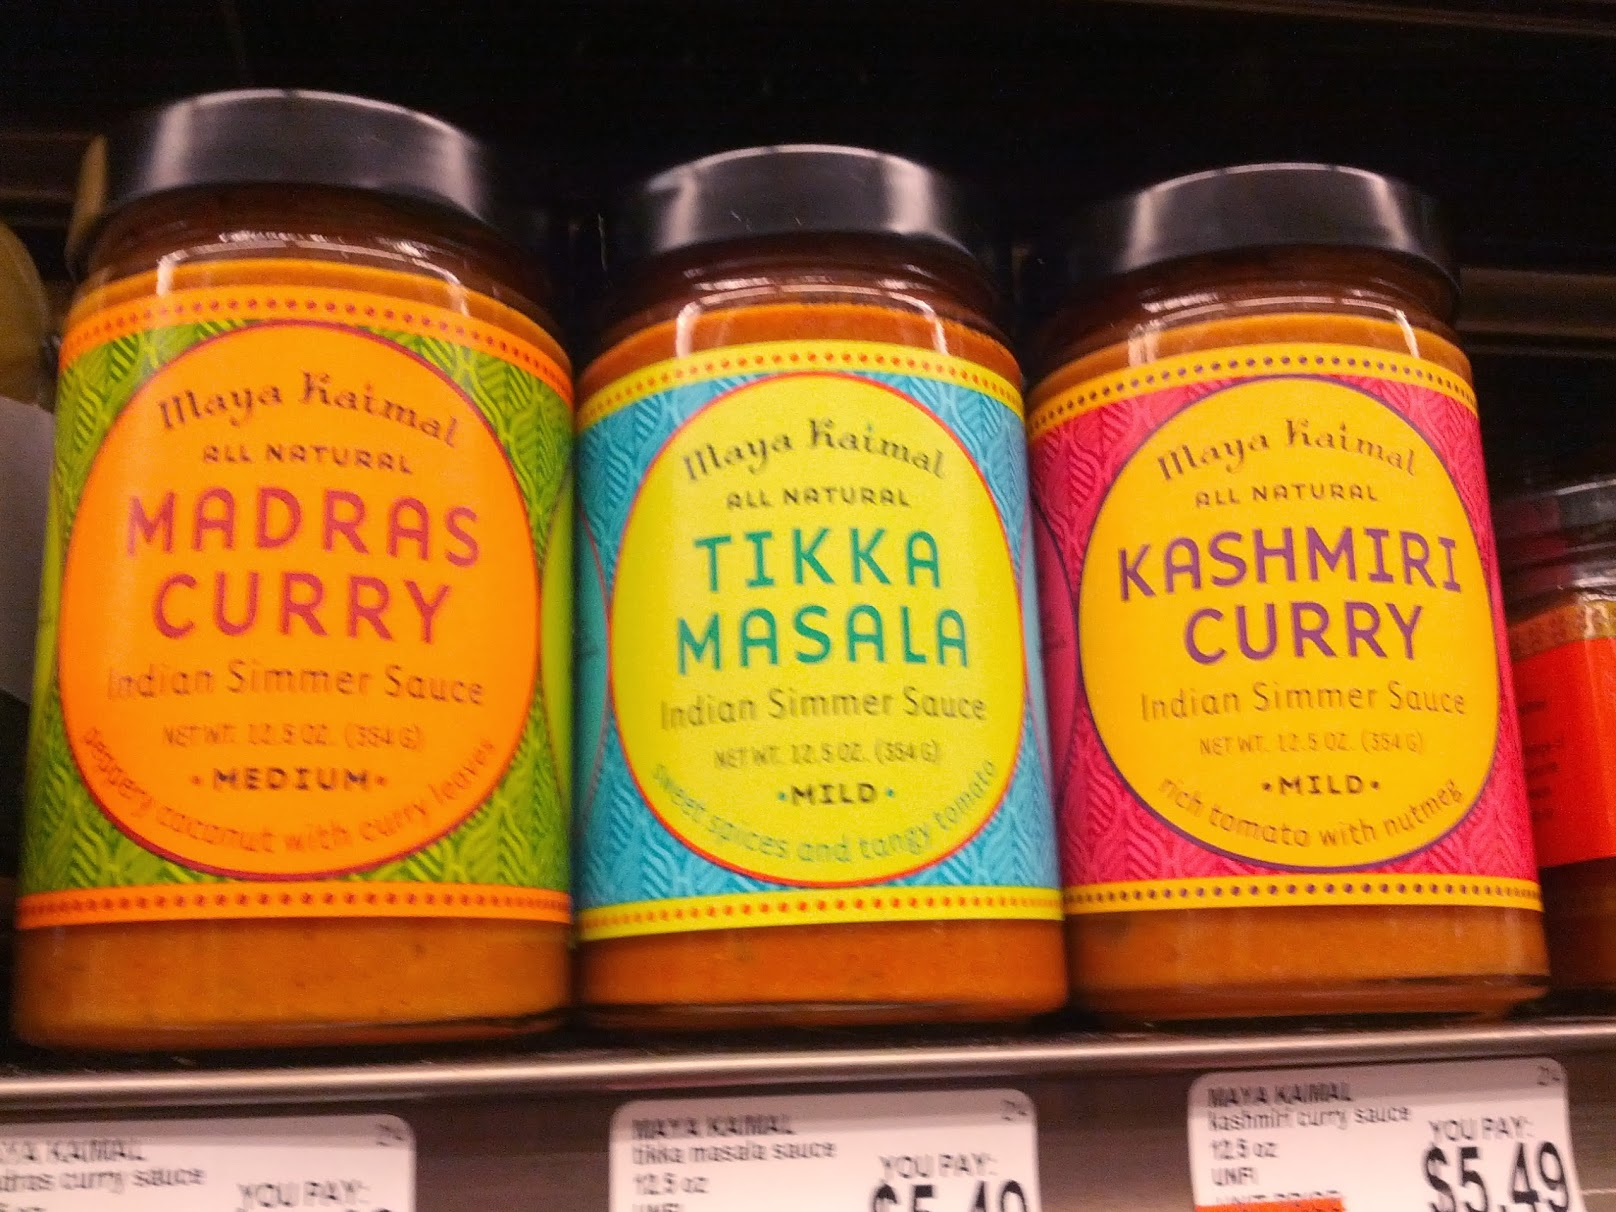 Madras Curry Healthy Living Market